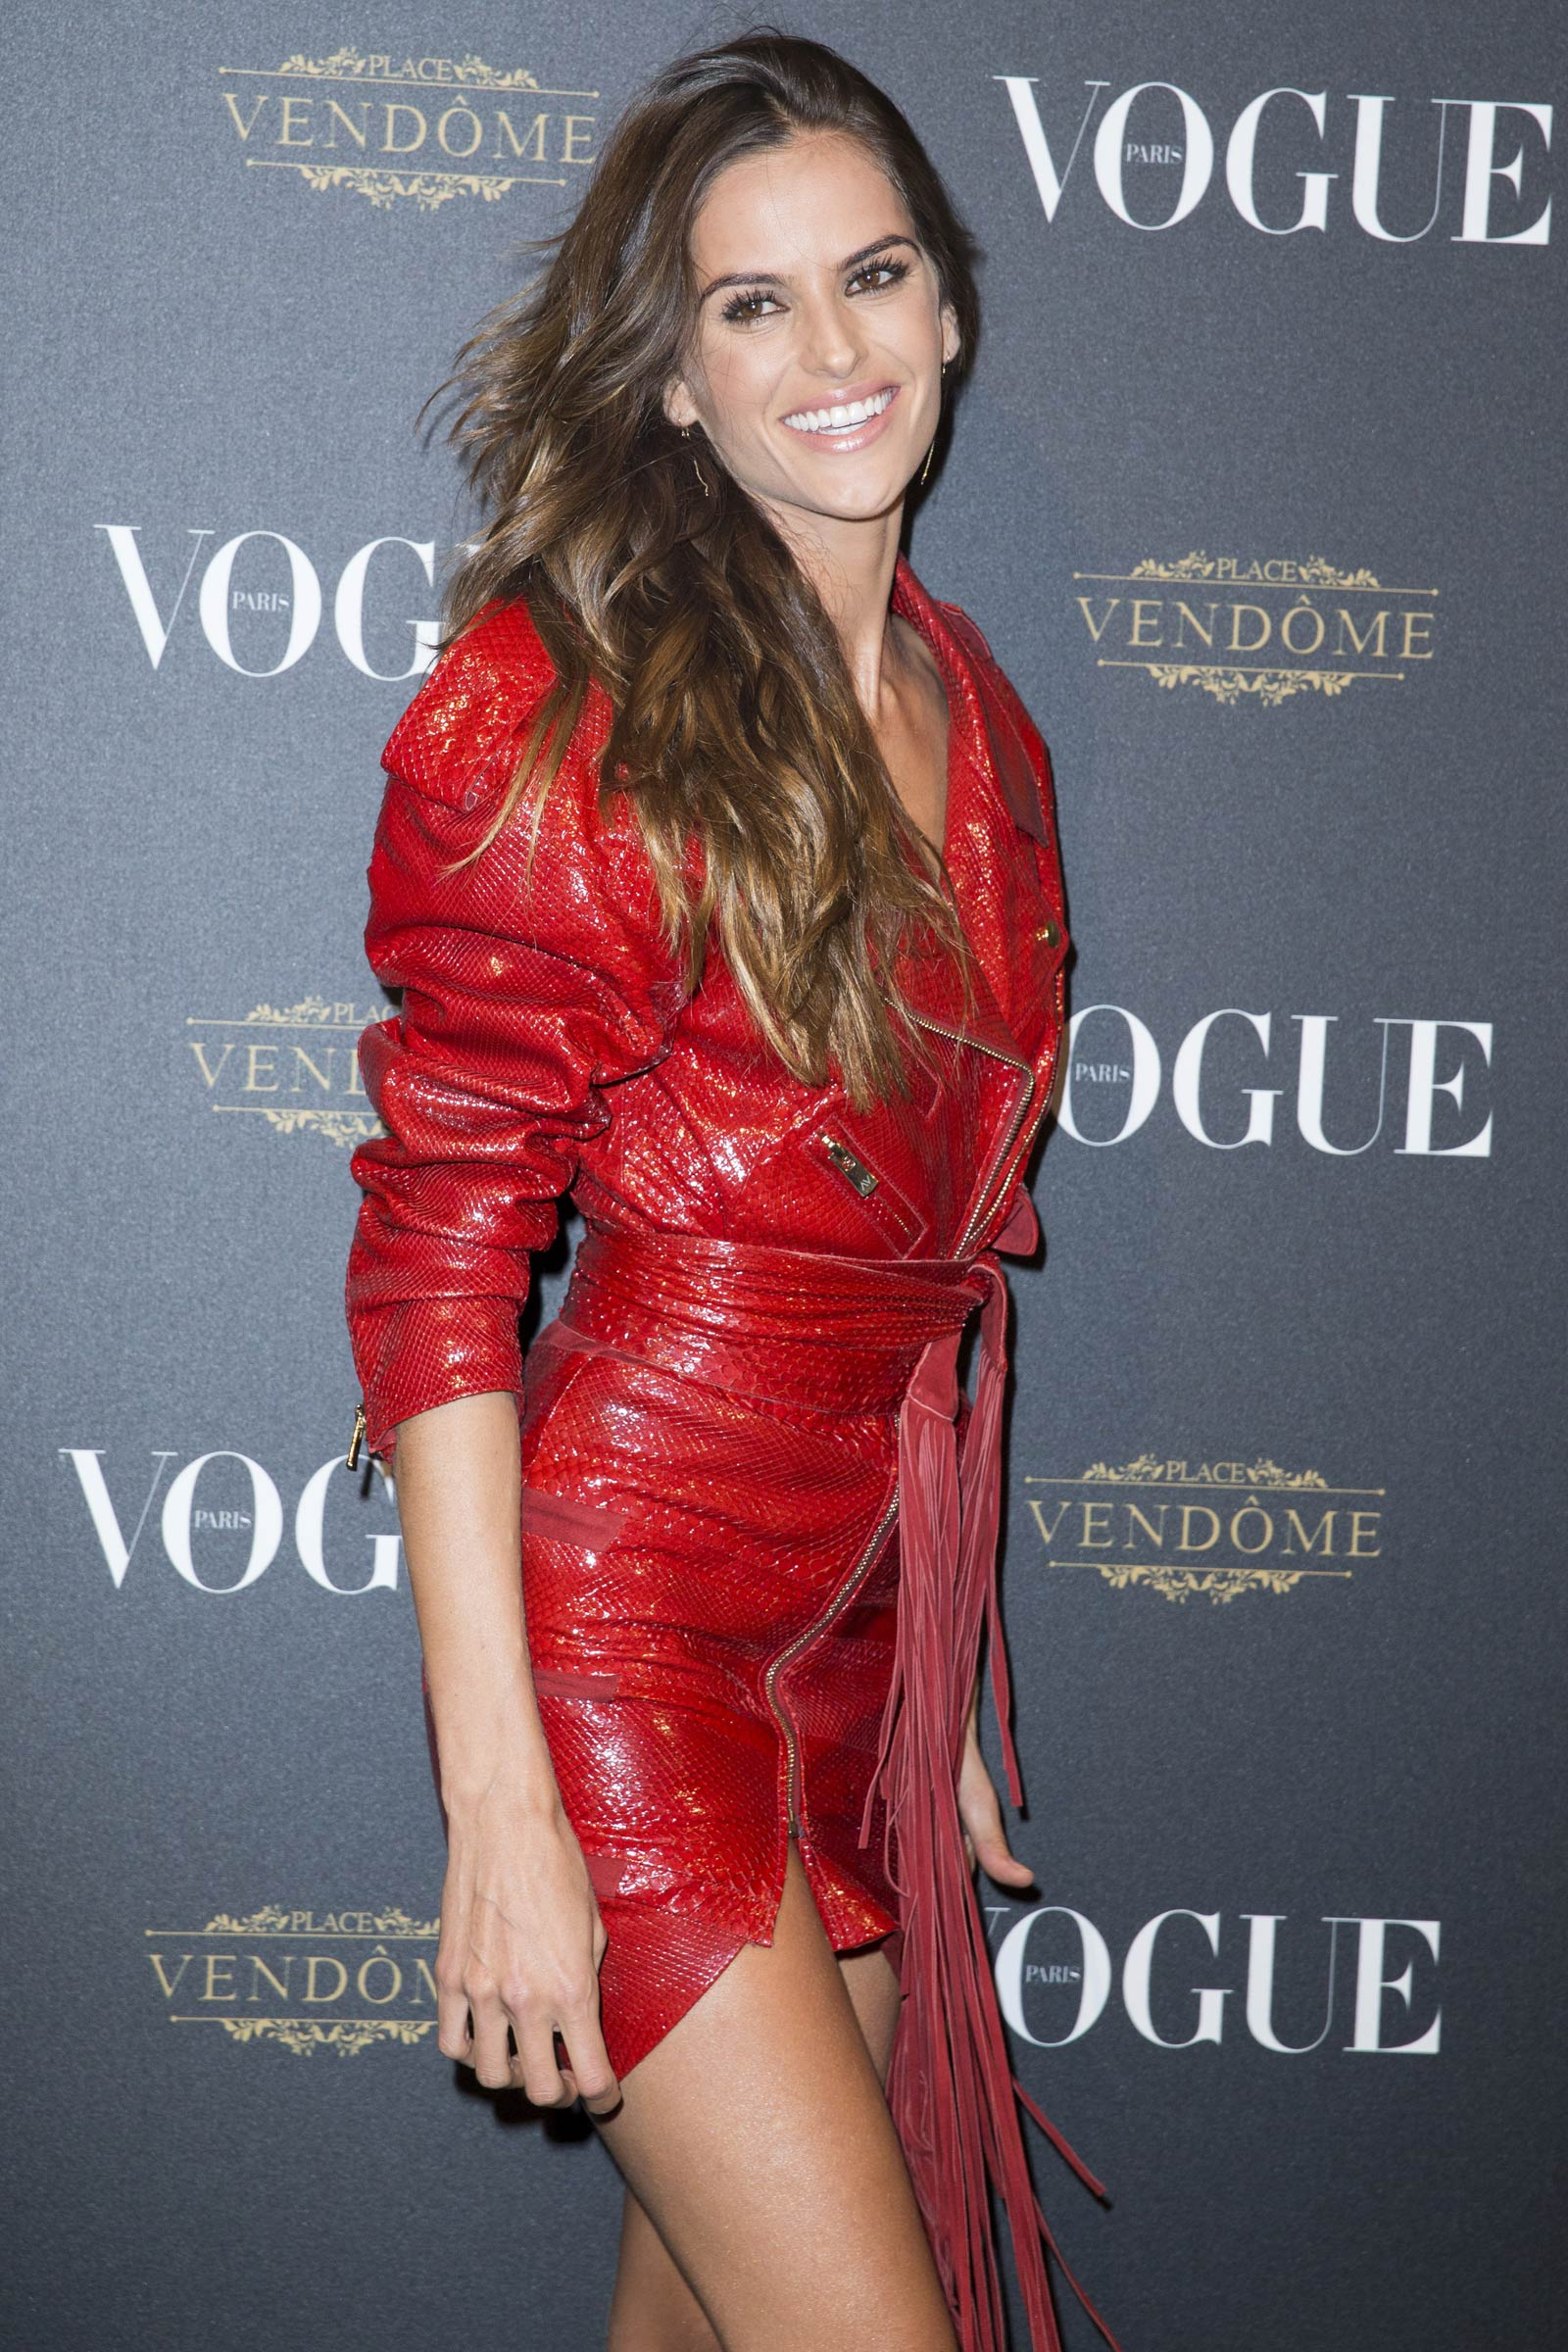 Izabel Goulart attends Vogue 95th anniversary party